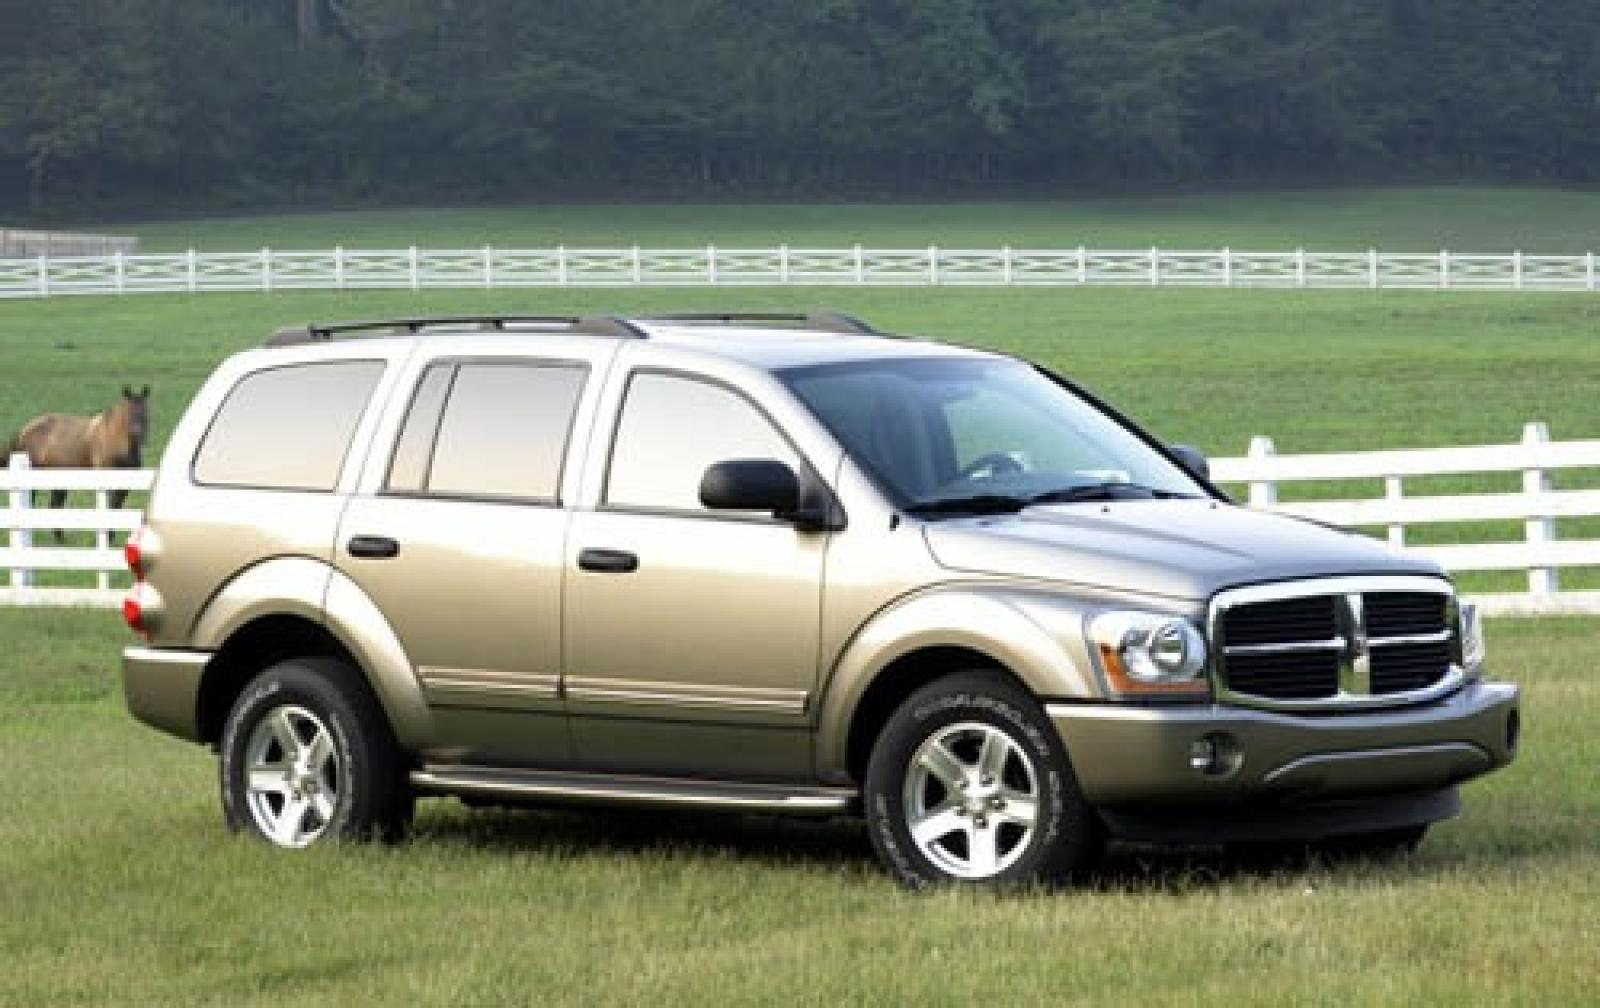 2006 dodge durango information and photos zombiedrive. Black Bedroom Furniture Sets. Home Design Ideas